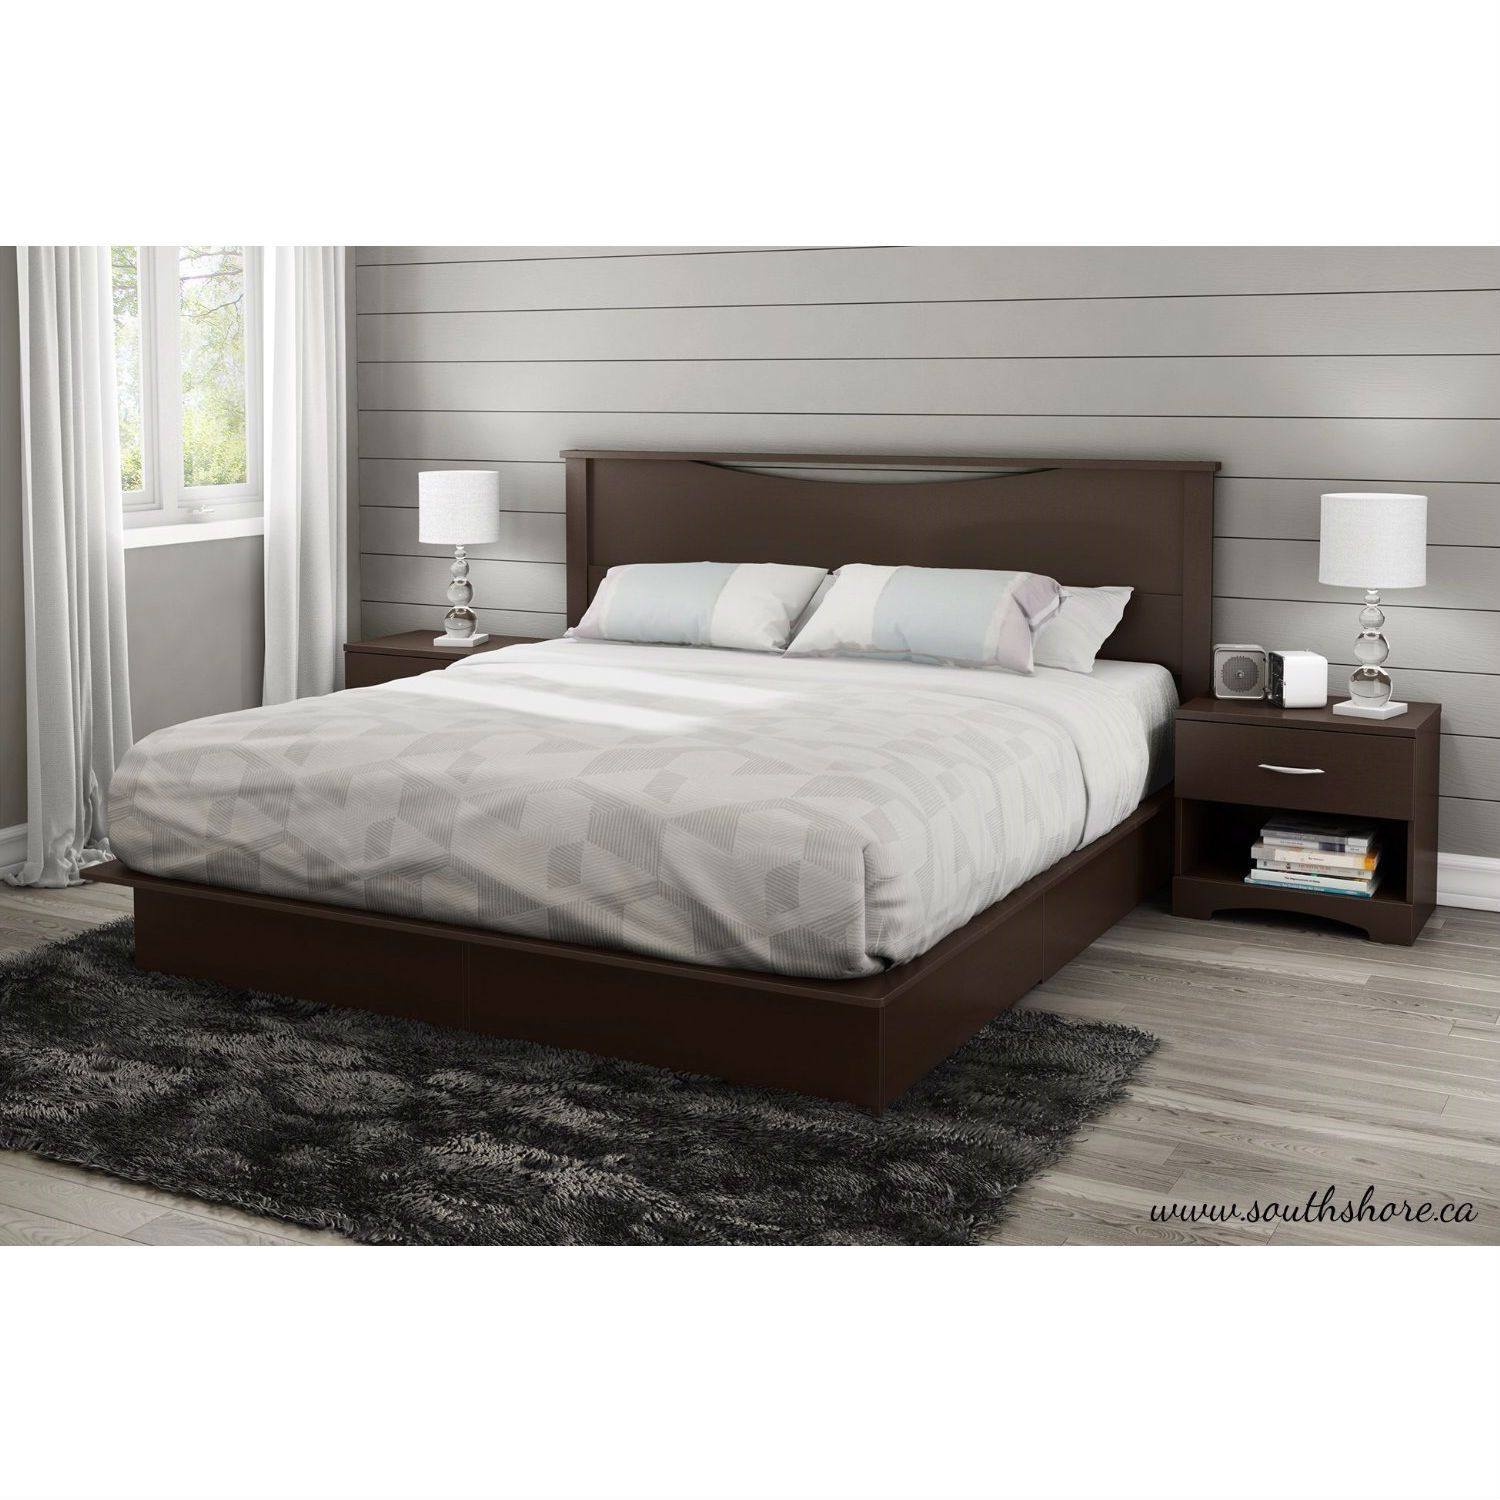 This King Size Modern Platform Bed With 2 Storage Drawers In Chocolate Has A Timeless Look A With Images Platform Bed With Drawers King Size Platform Bed King Platform Bed